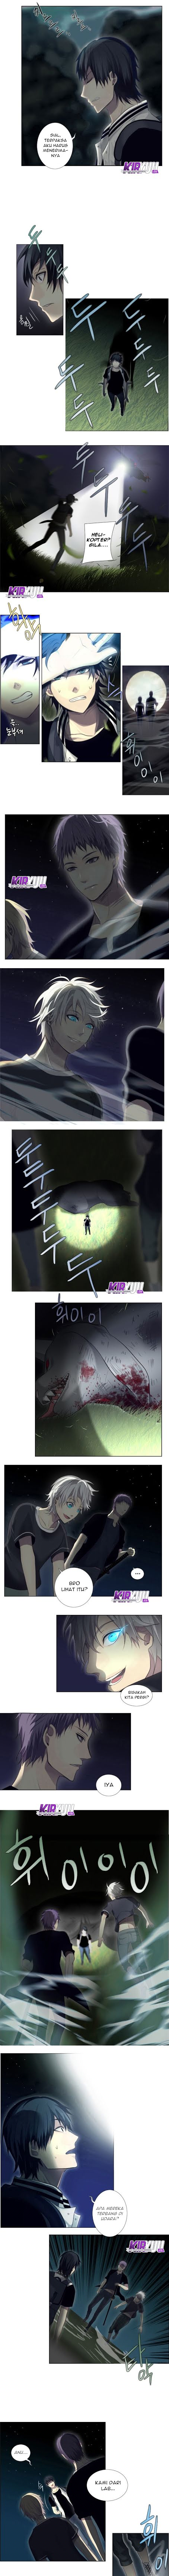 Gong Heon Ja: Chapter 07 - Page 3